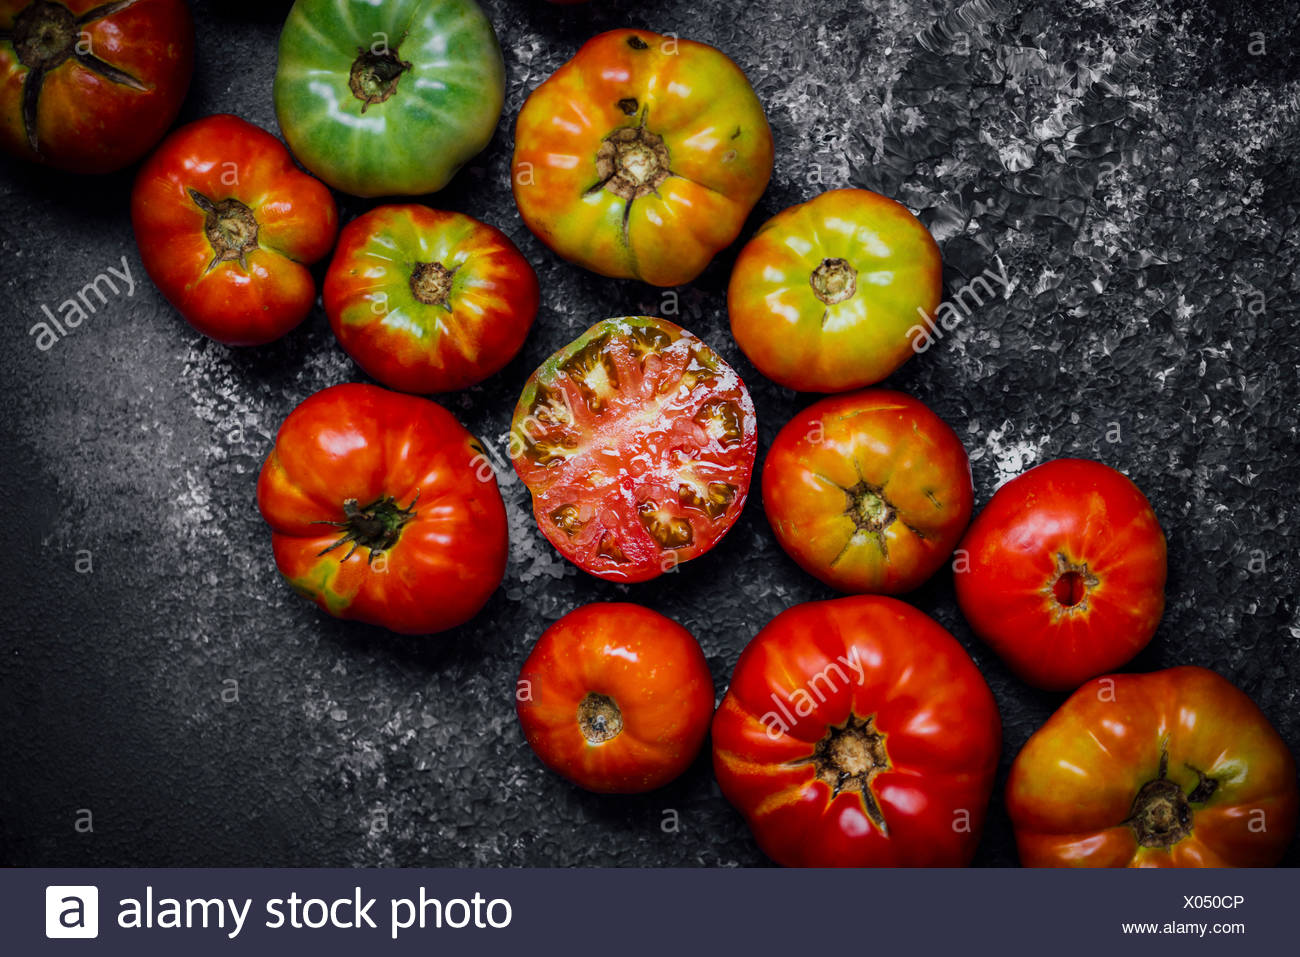 Heirloom Tomatoes gathered on a board and one halved red tomato is in the center. - Stock Image